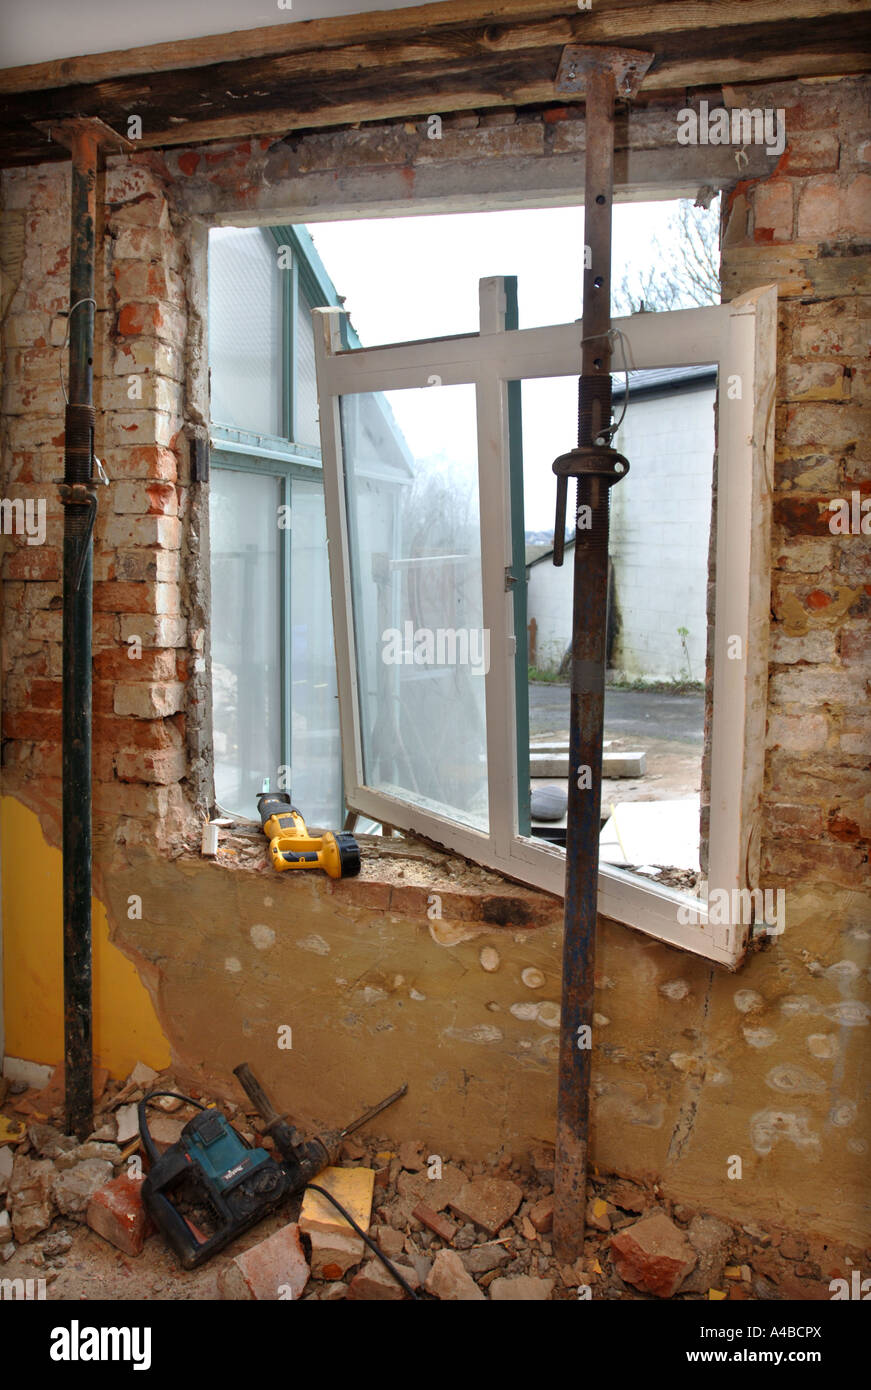 Acrow Props Uk : Acrow props holding a ceiling and joists in order to